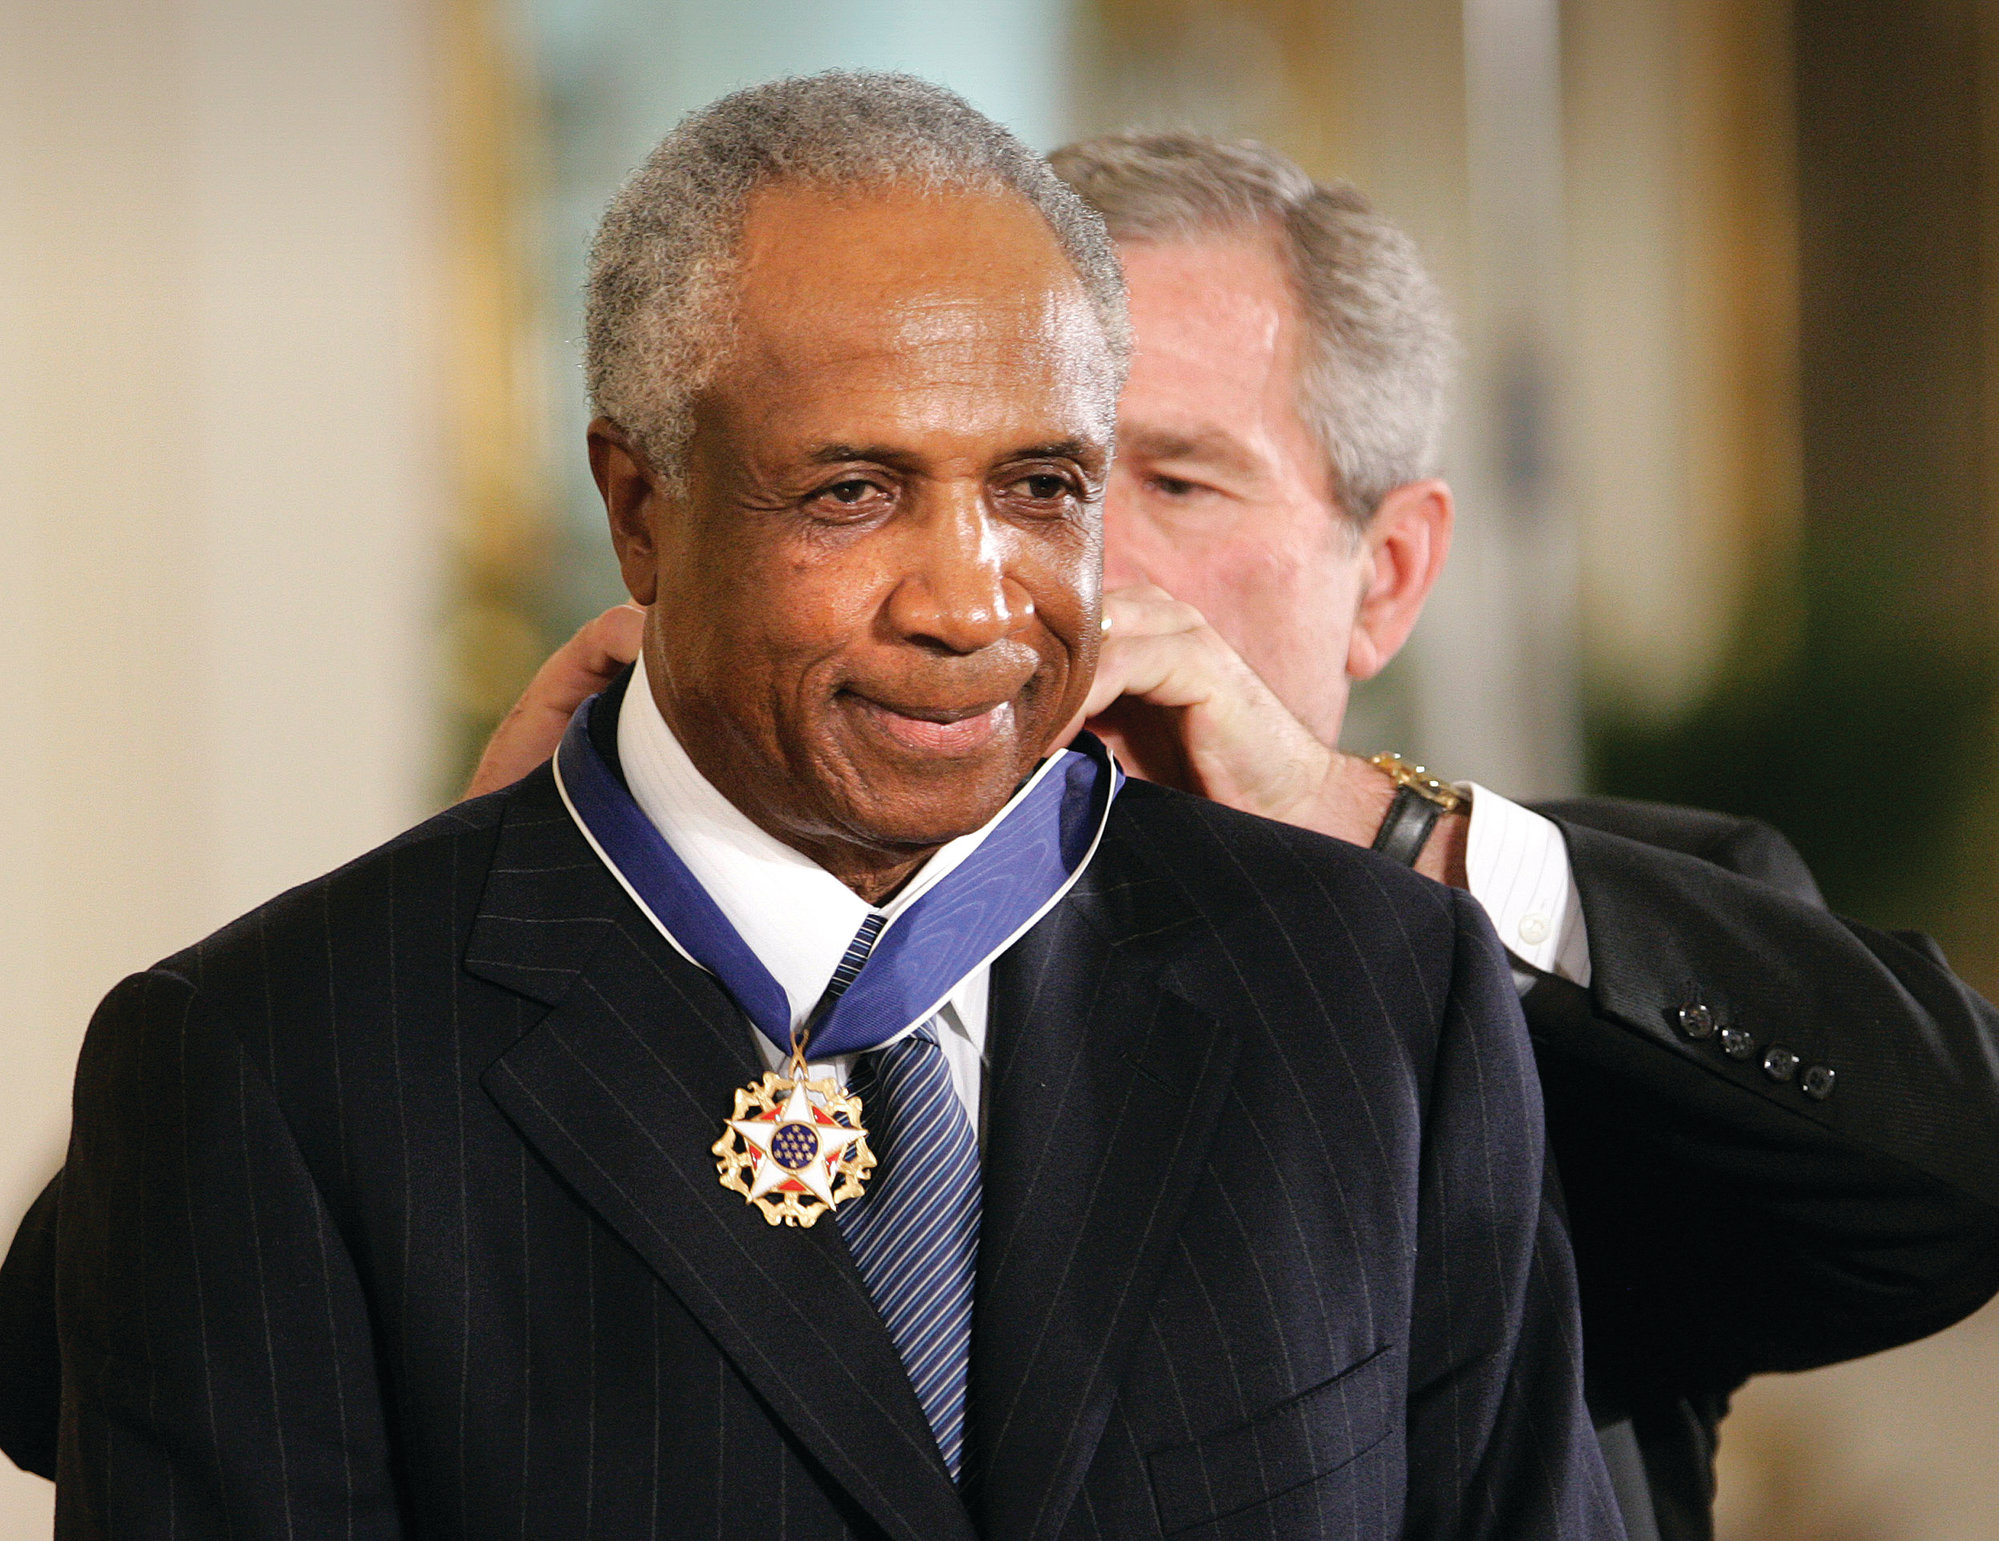 Baseball Hall of Famer Frank Robinson receives the Presidential Medal of Freedom from President George W. Bush in 2005. Robinson passed away on Friday at the age of 83.